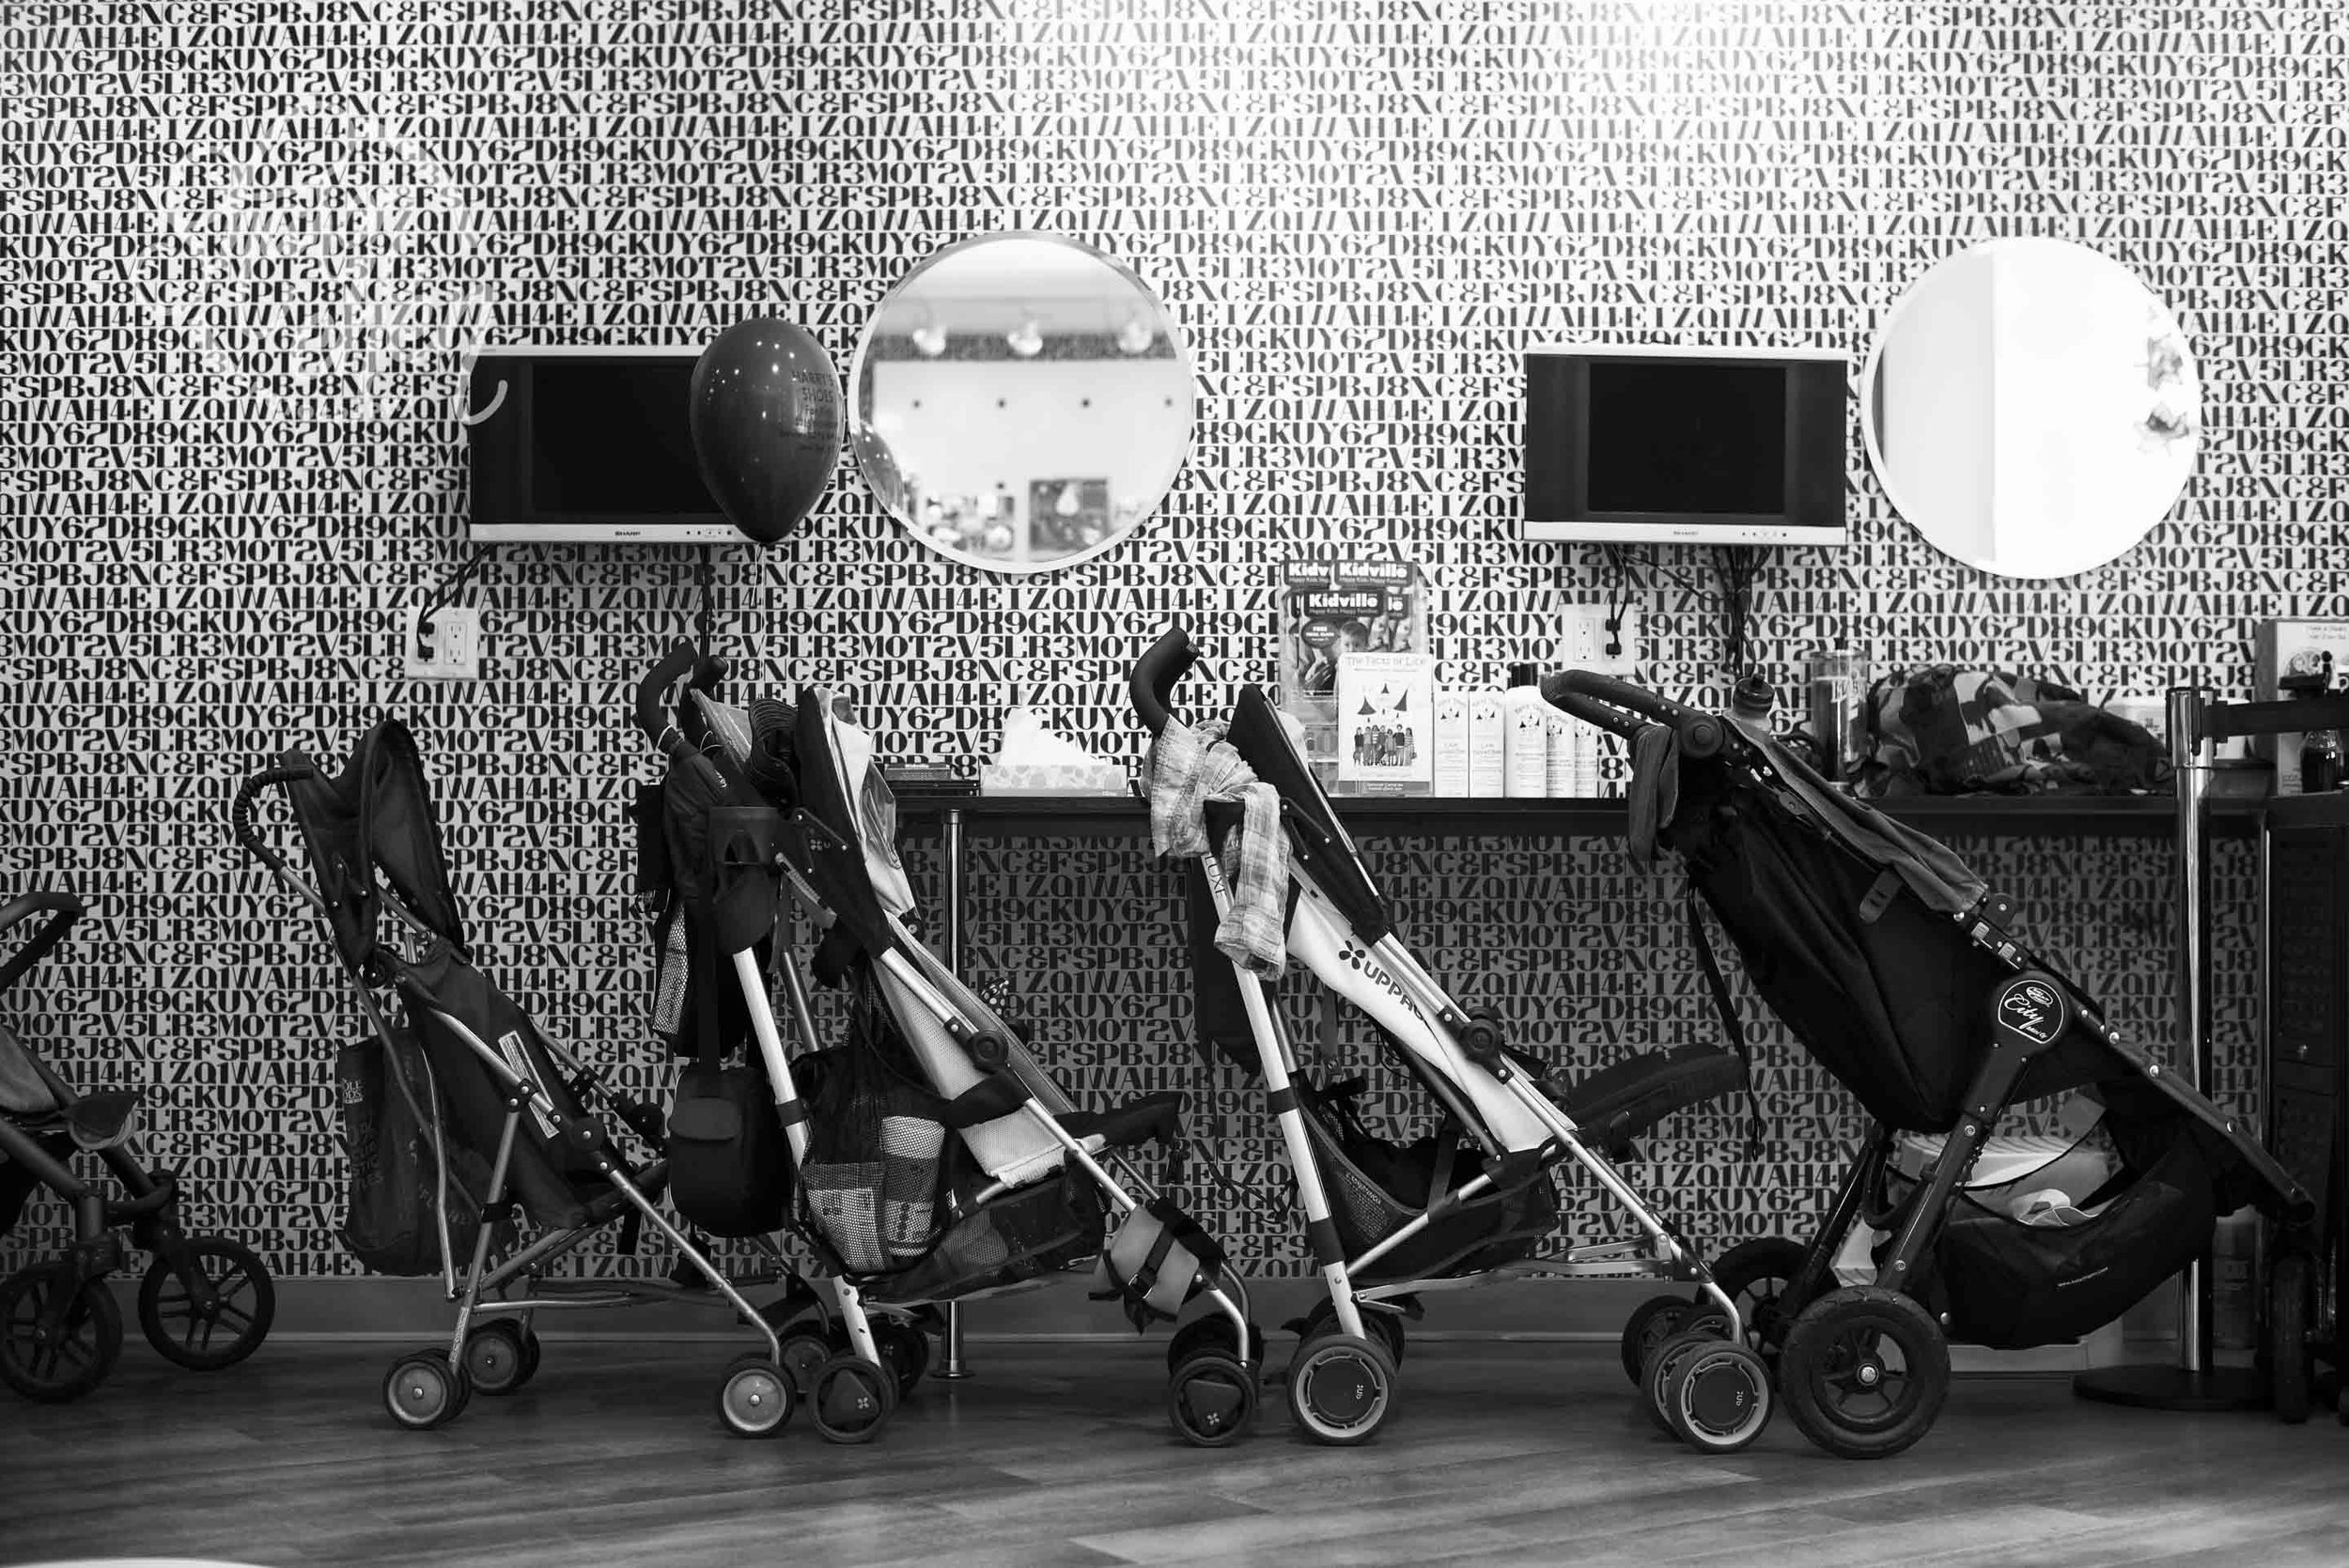 Filling up with strollers (this was just the start)